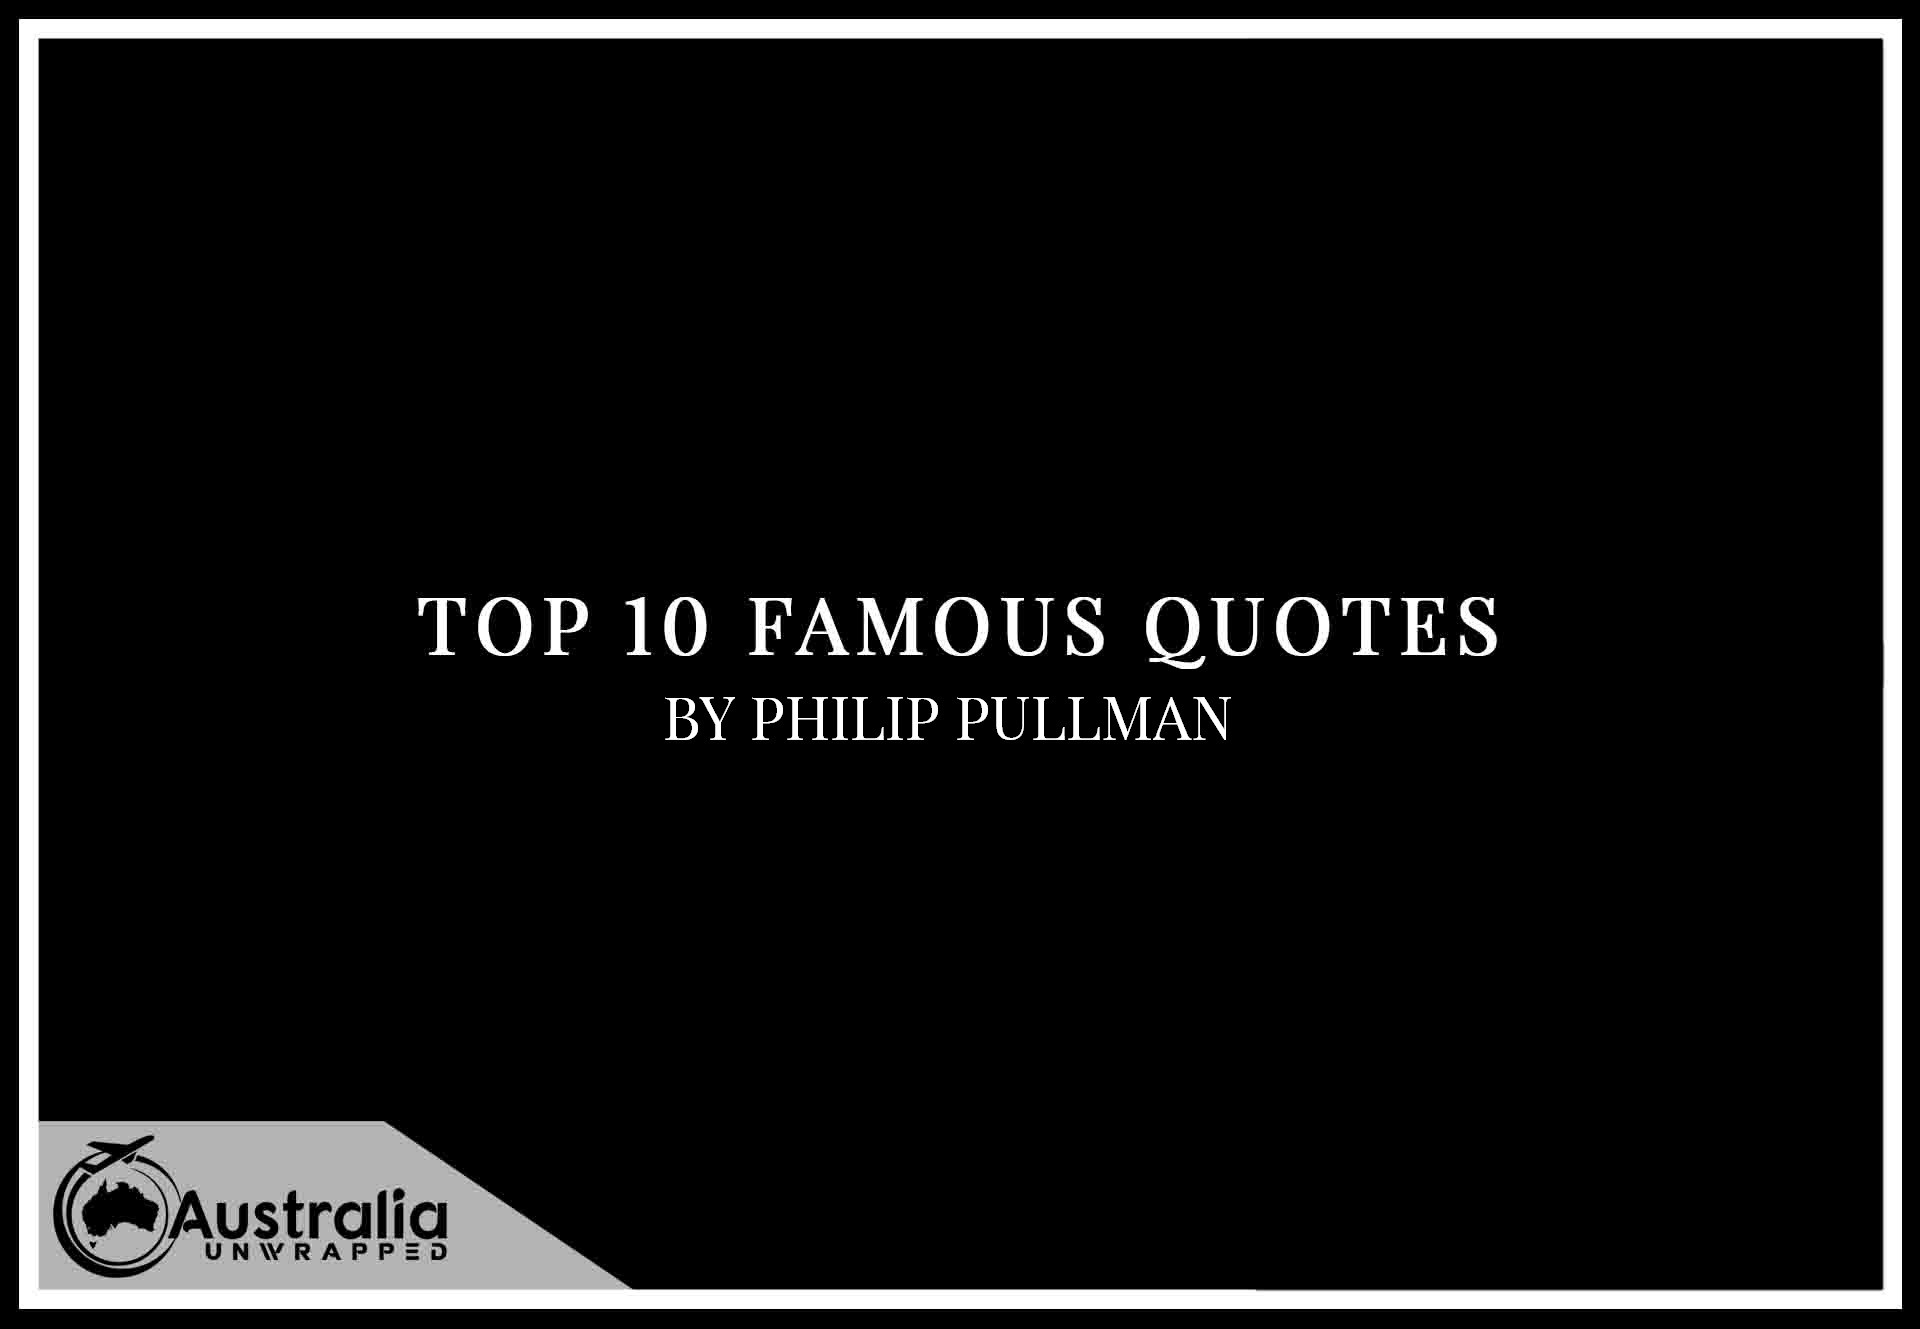 Top 10 Famous Quotes by Author Philip Pullman